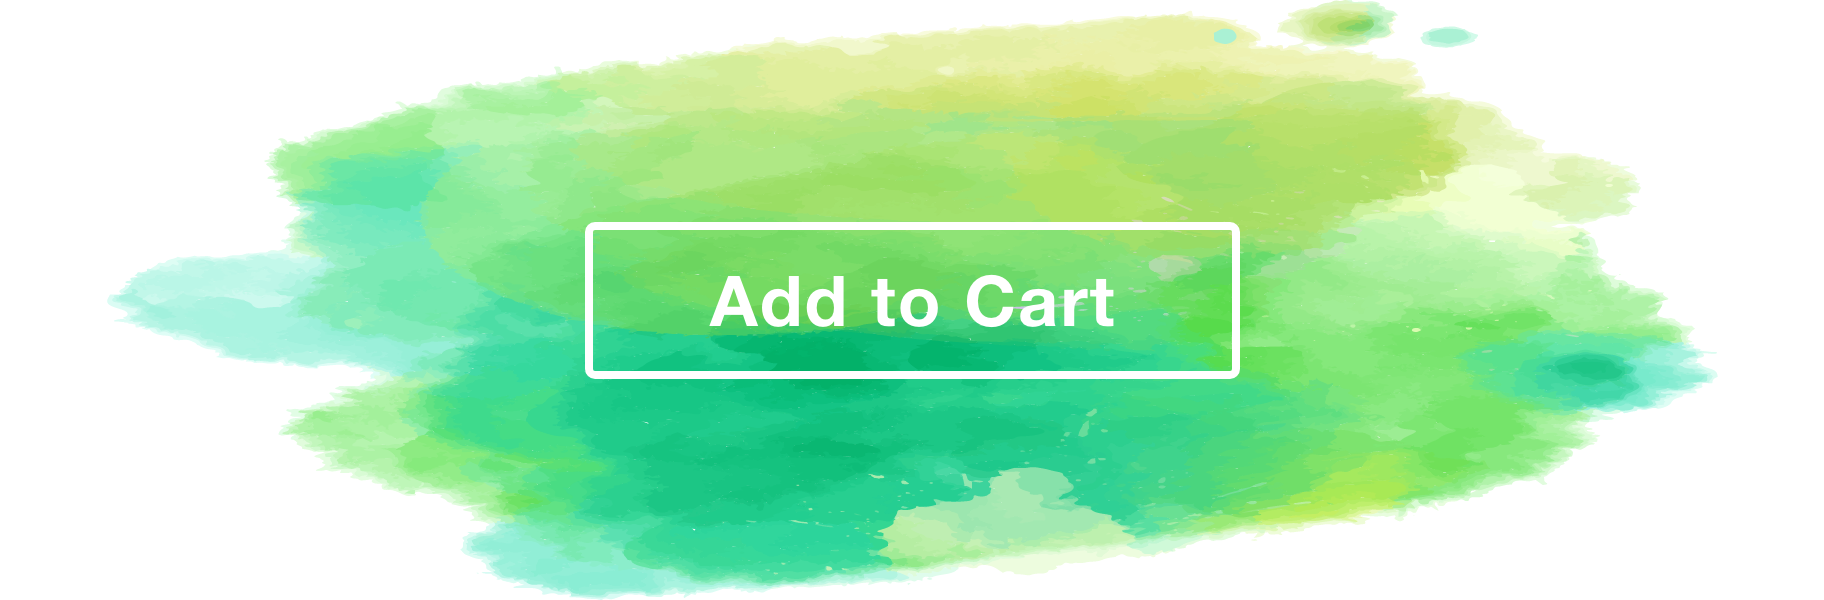 add to cart button green